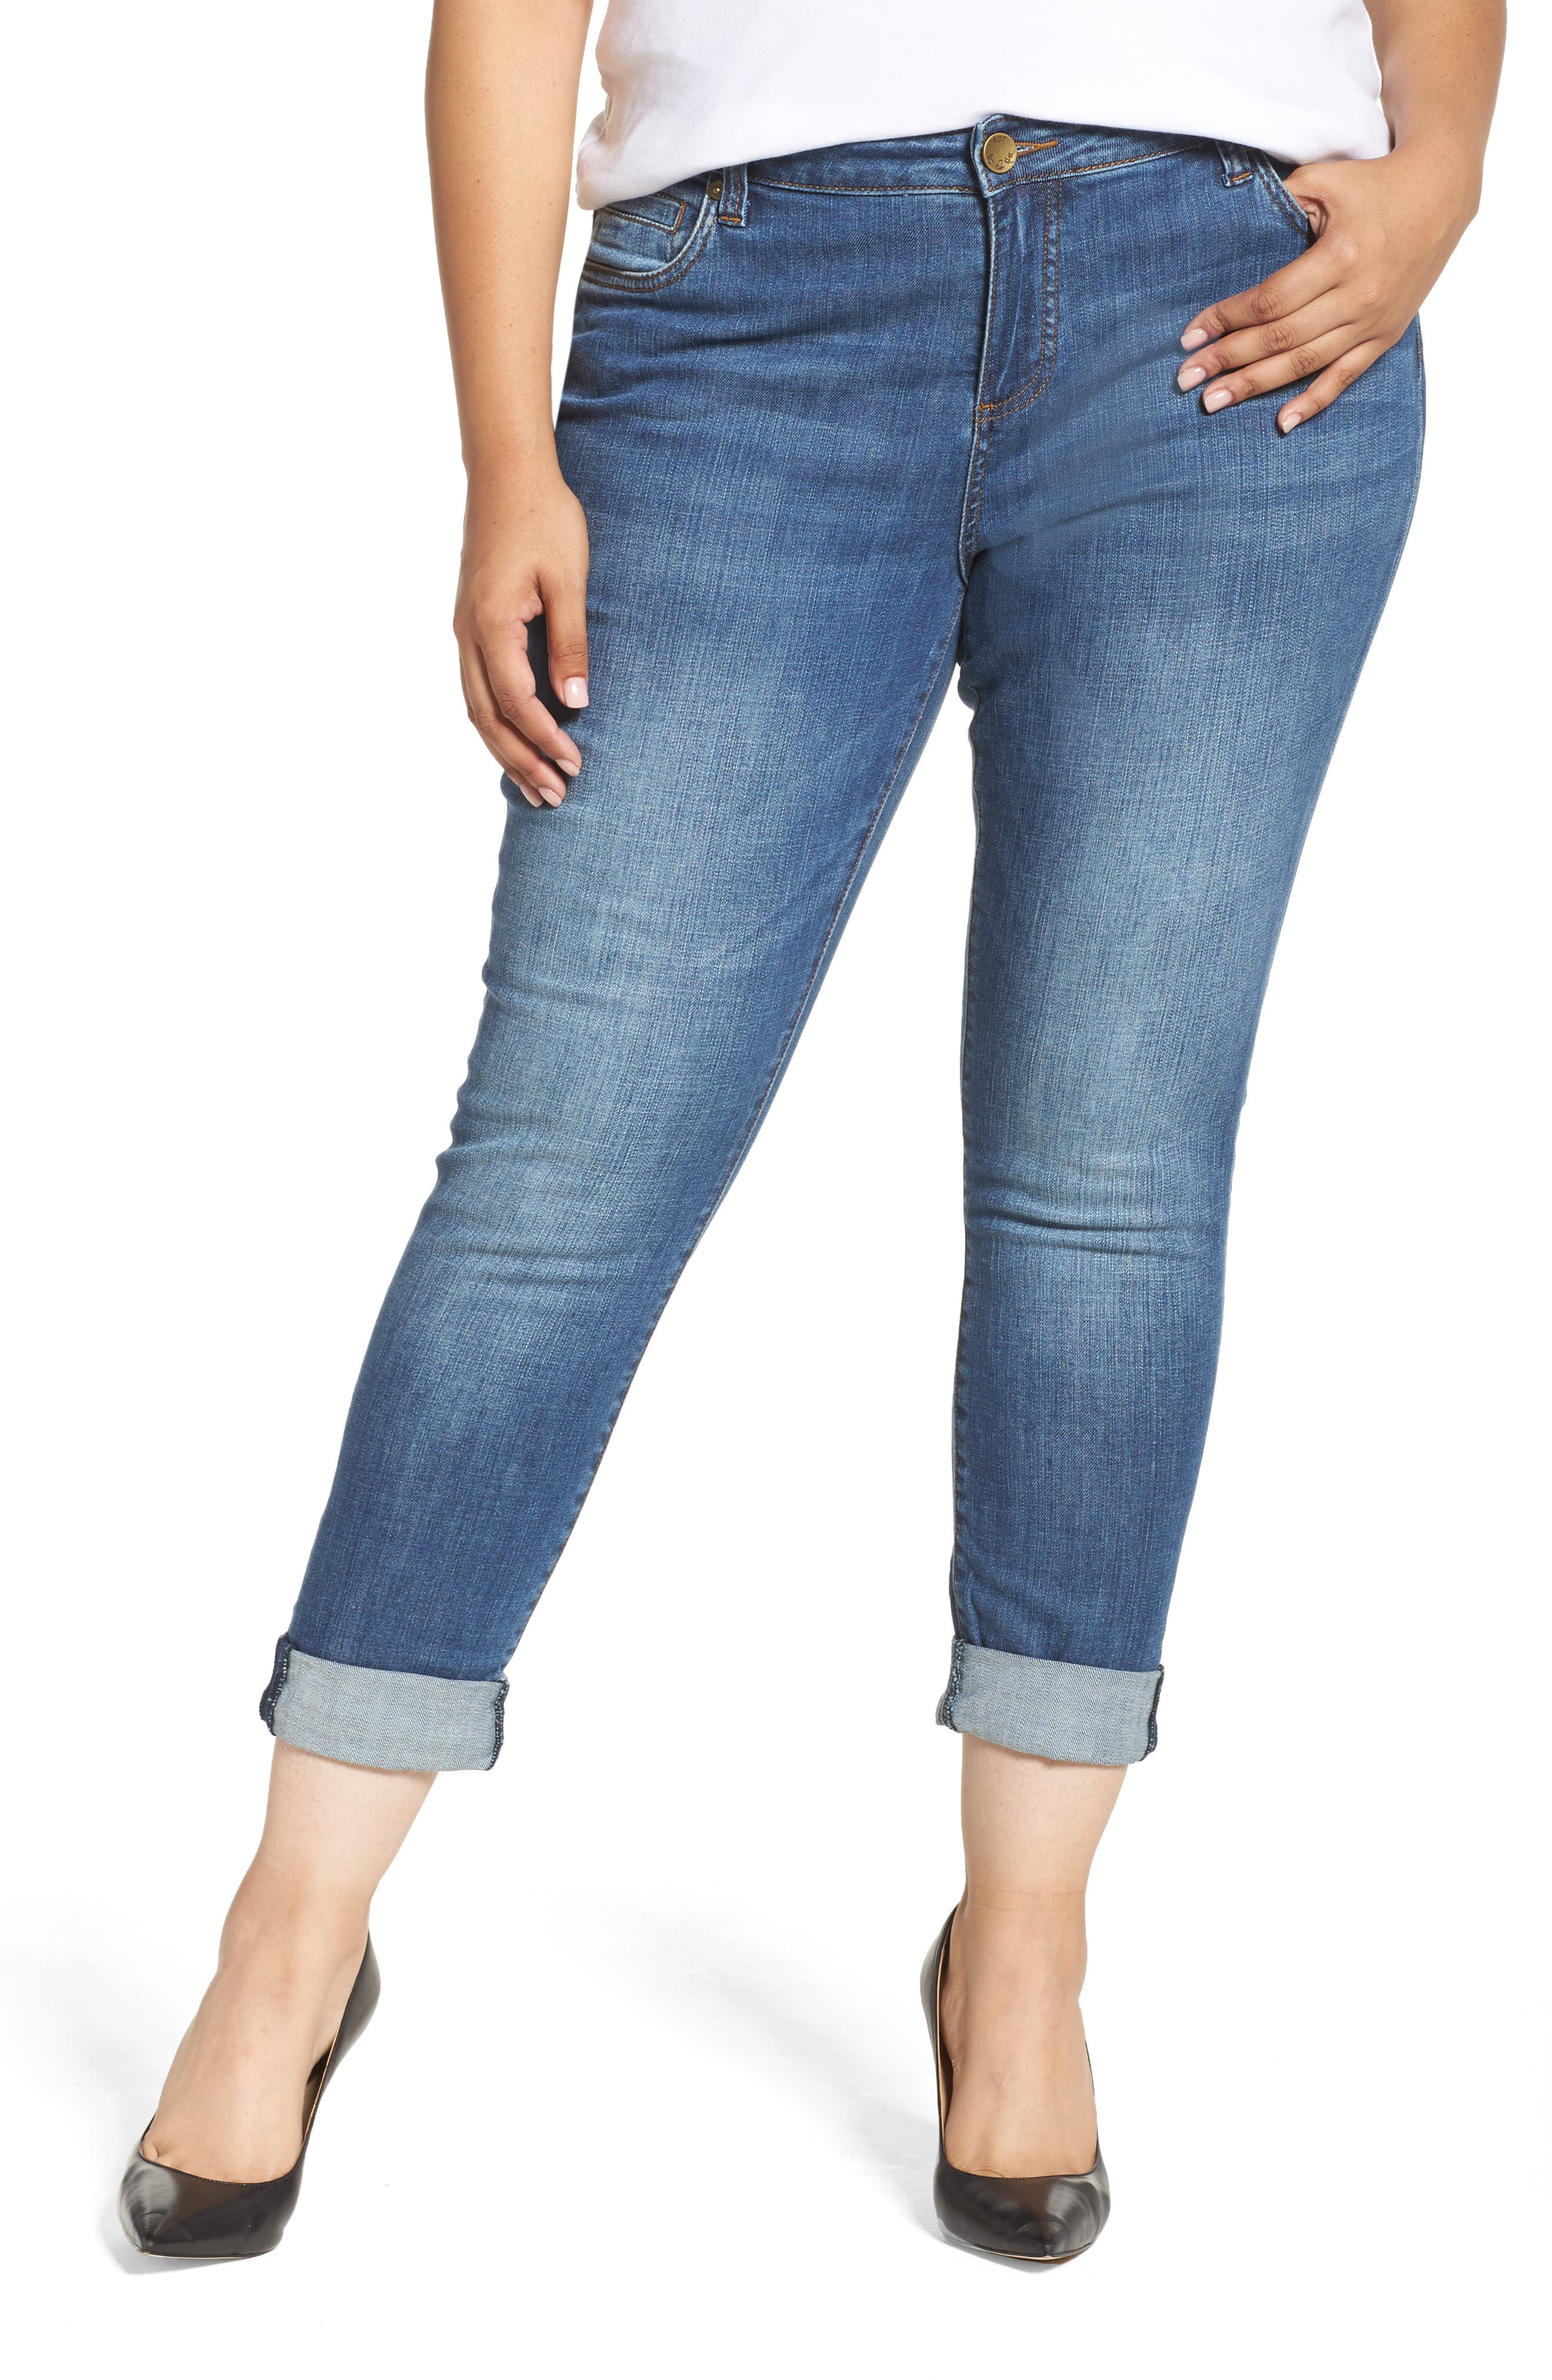 Alternate Image 1 Selected - KUT from the Kloth Catherine Boyfriend Jeans (Fervent) (Plus Size)